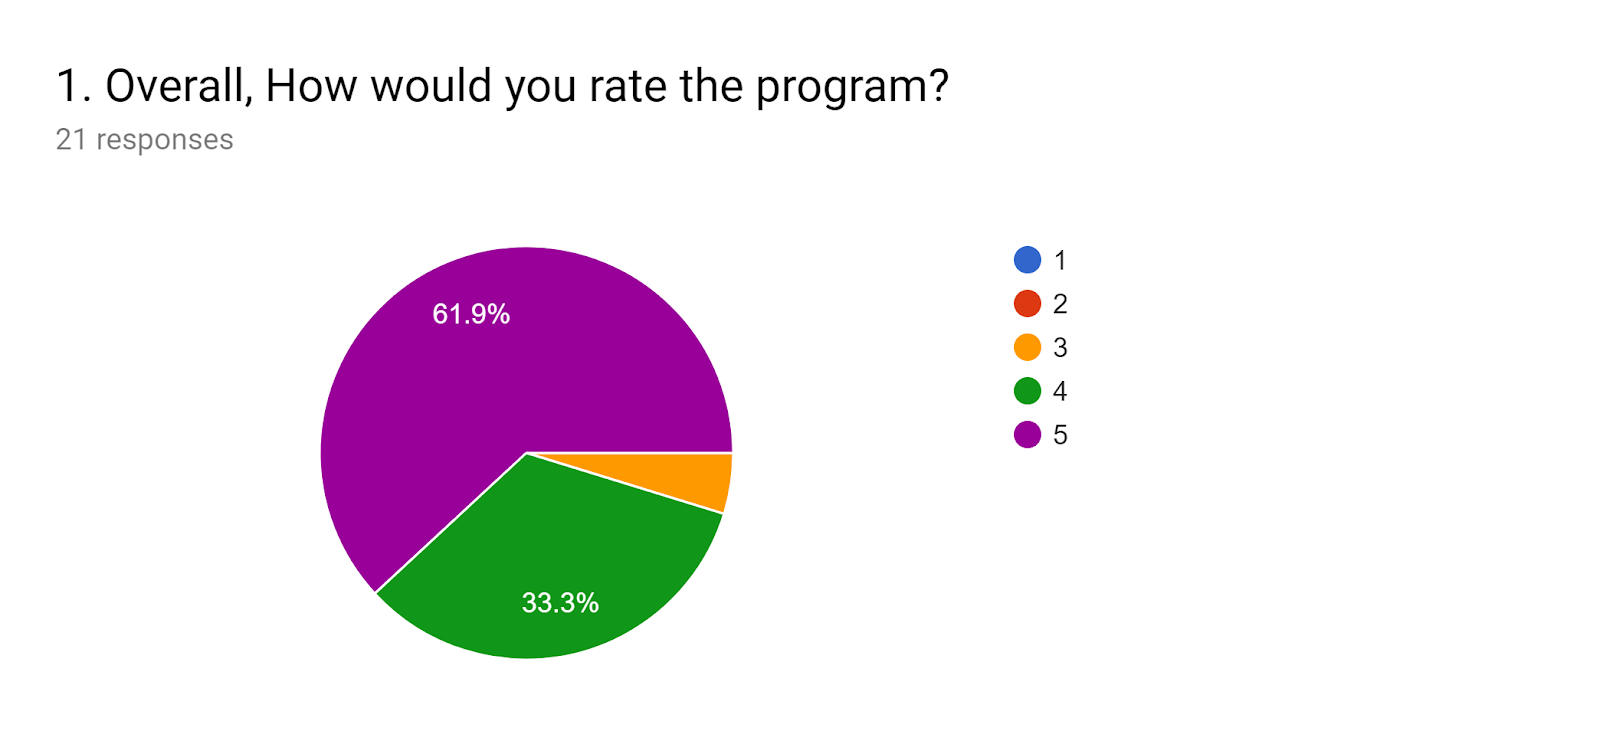 Forms response chart. Question title: 1. Overall, How would you rate the program?. Number of responses: 21 responses.